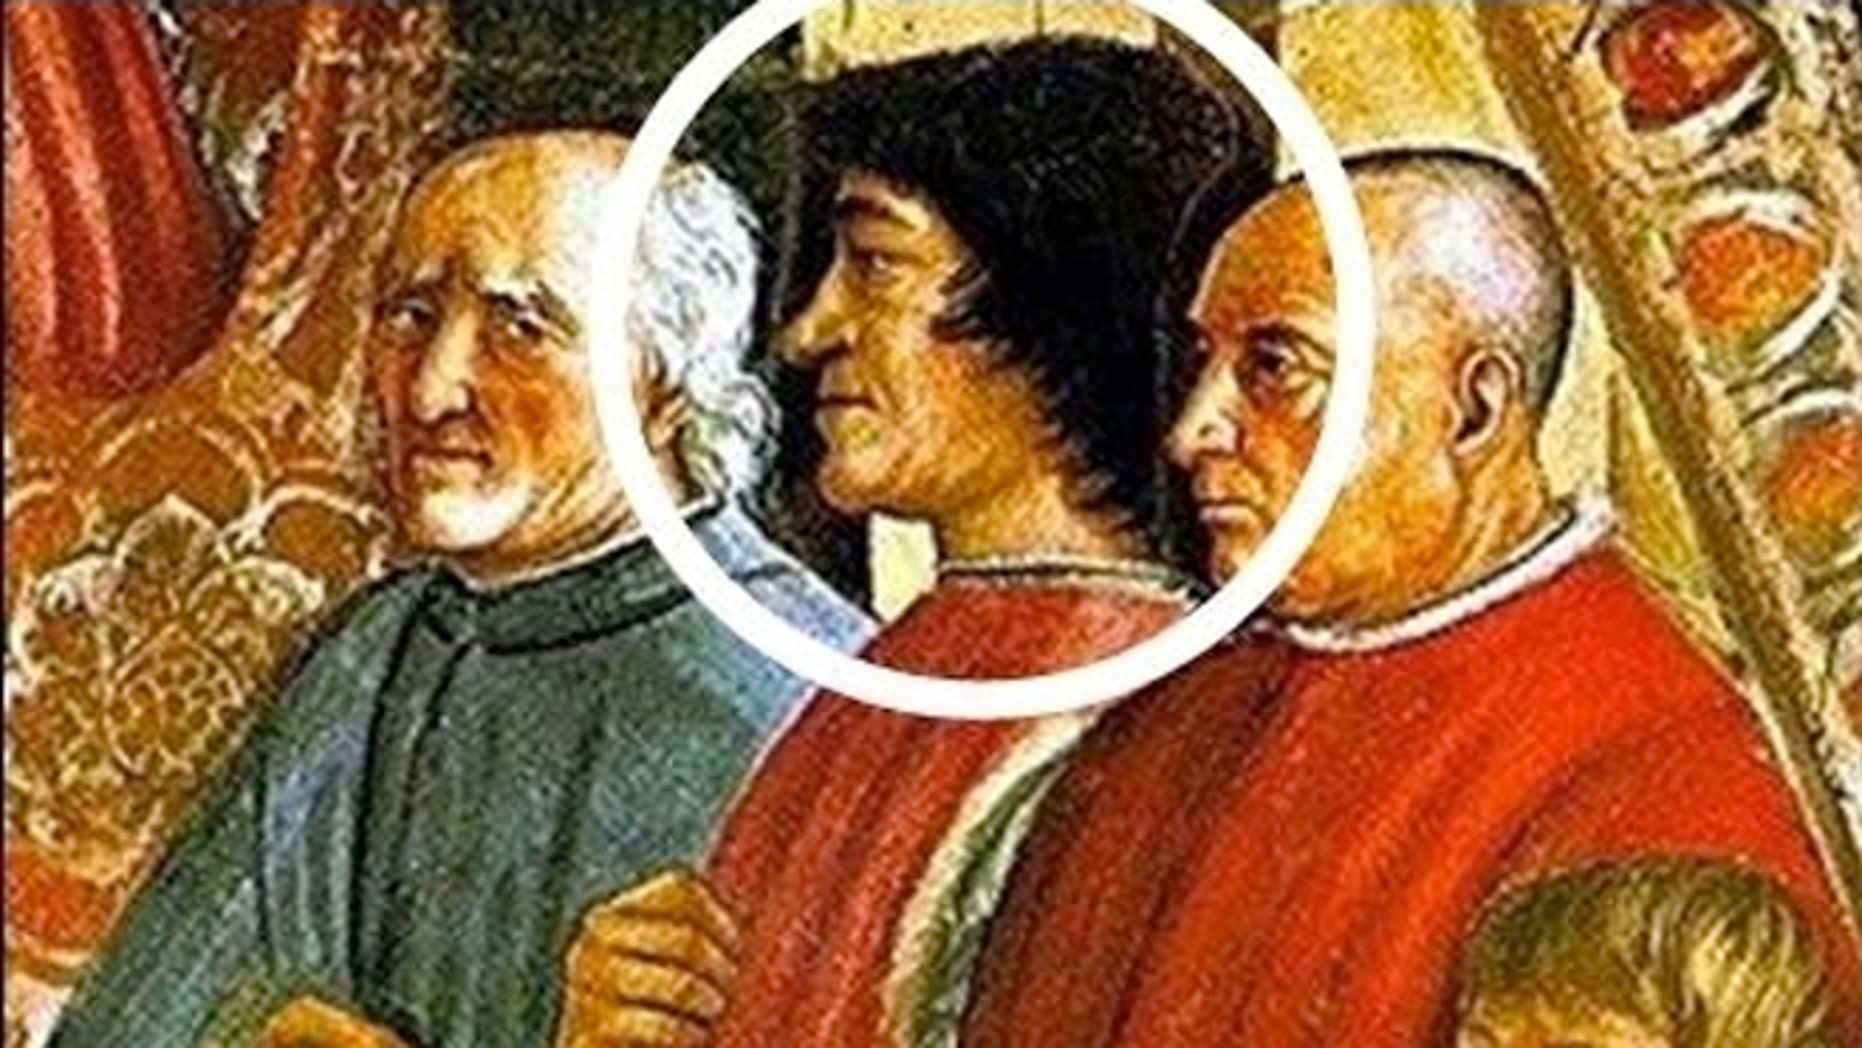 Can facial-recognition software, written to spot live faces, identify people in paintings such as this fresco showing 15th-century Italian statesman Lorenzo de' Medici (circled)?